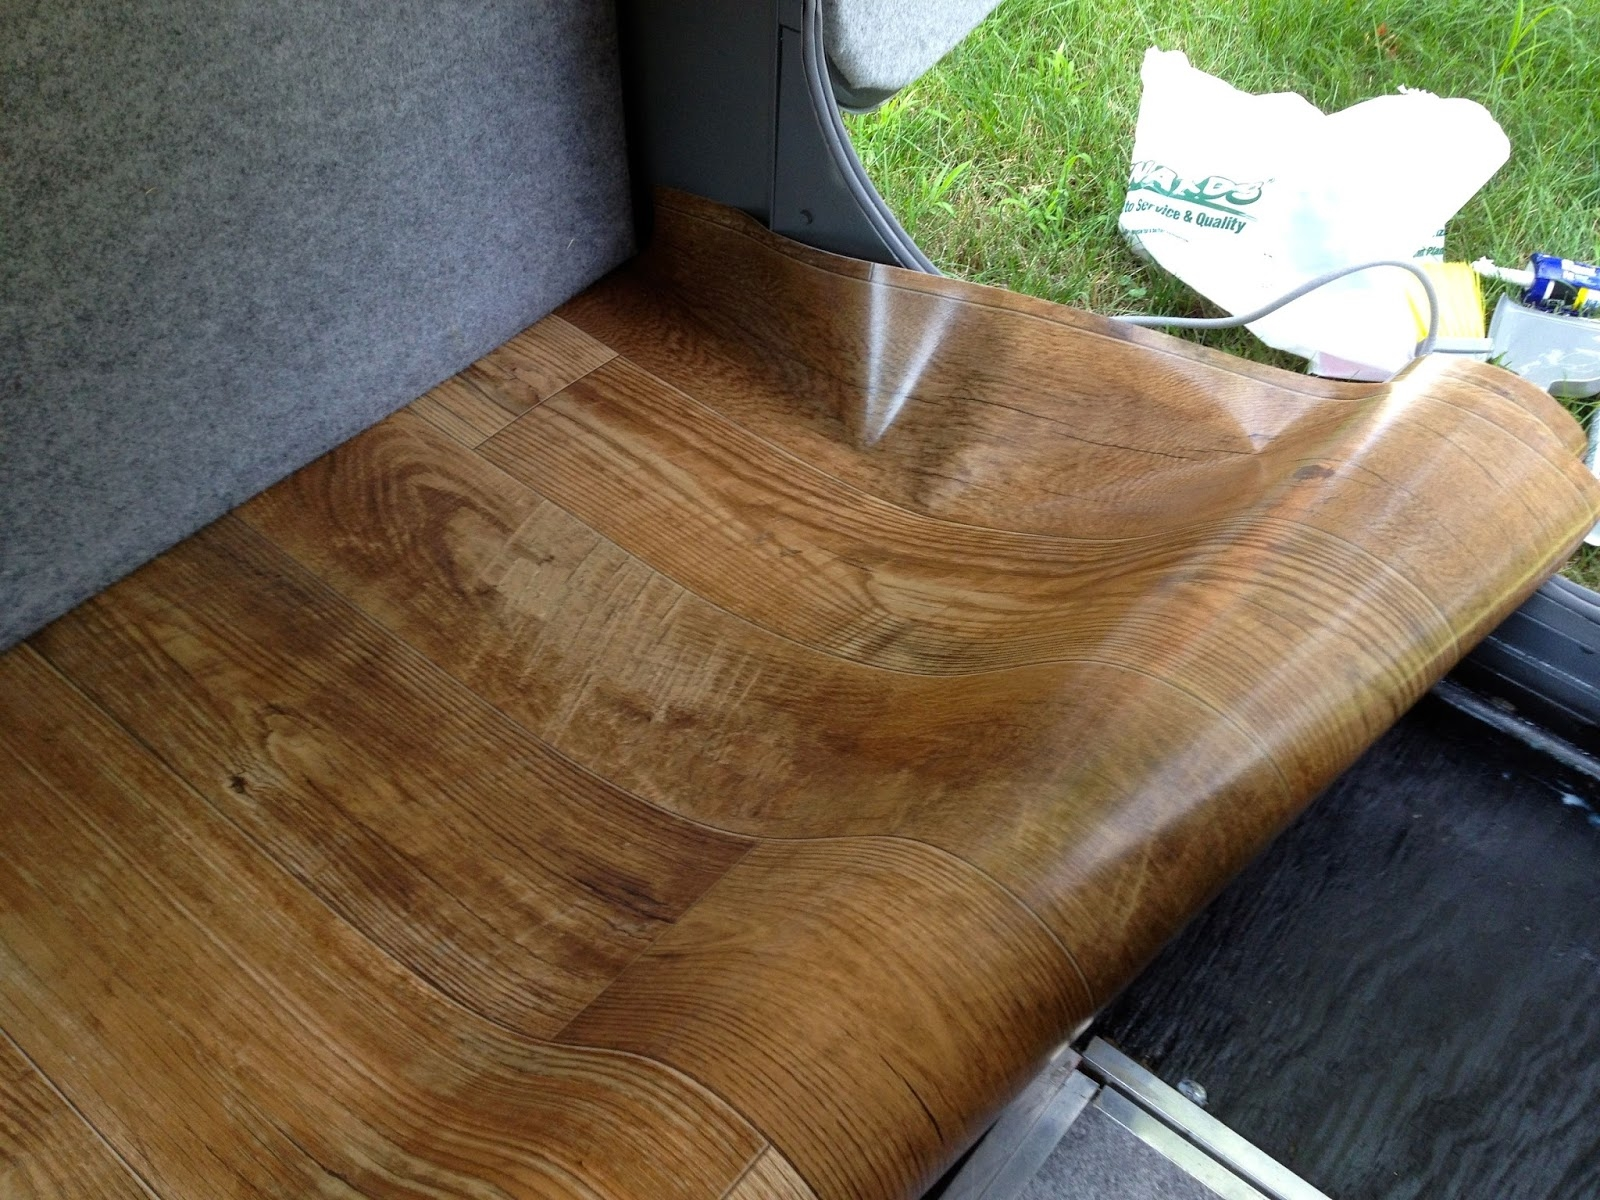 Wood Grain Vinyl Flooring Rolls